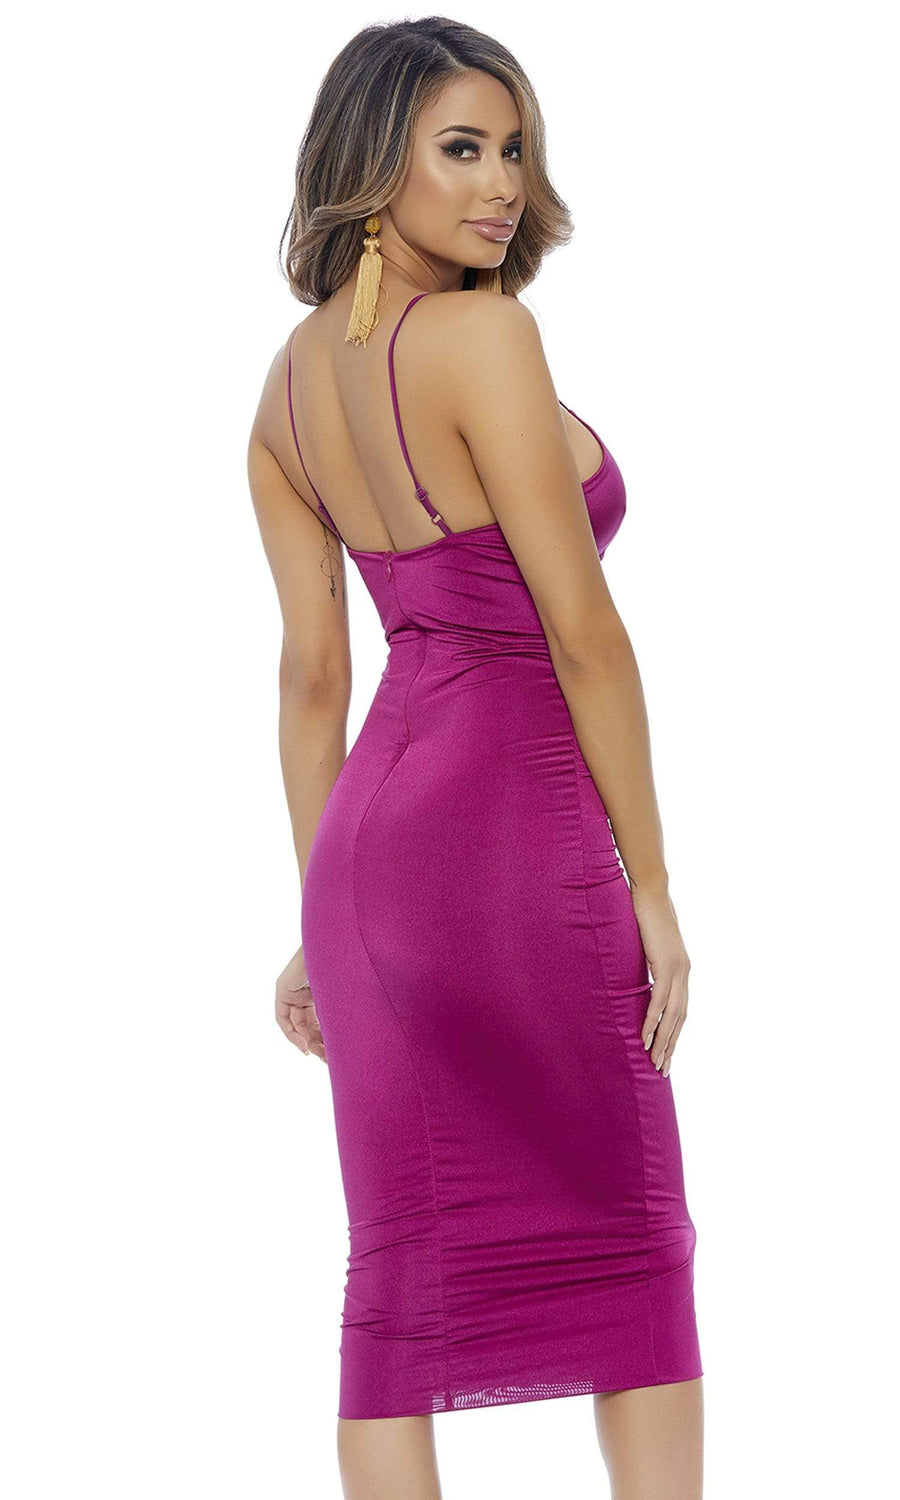 Forplay Small / Magenta Magenta Major Key Midi Dress SHC-886810-S-FP Apparel & Accessories > Clothing > Dresses